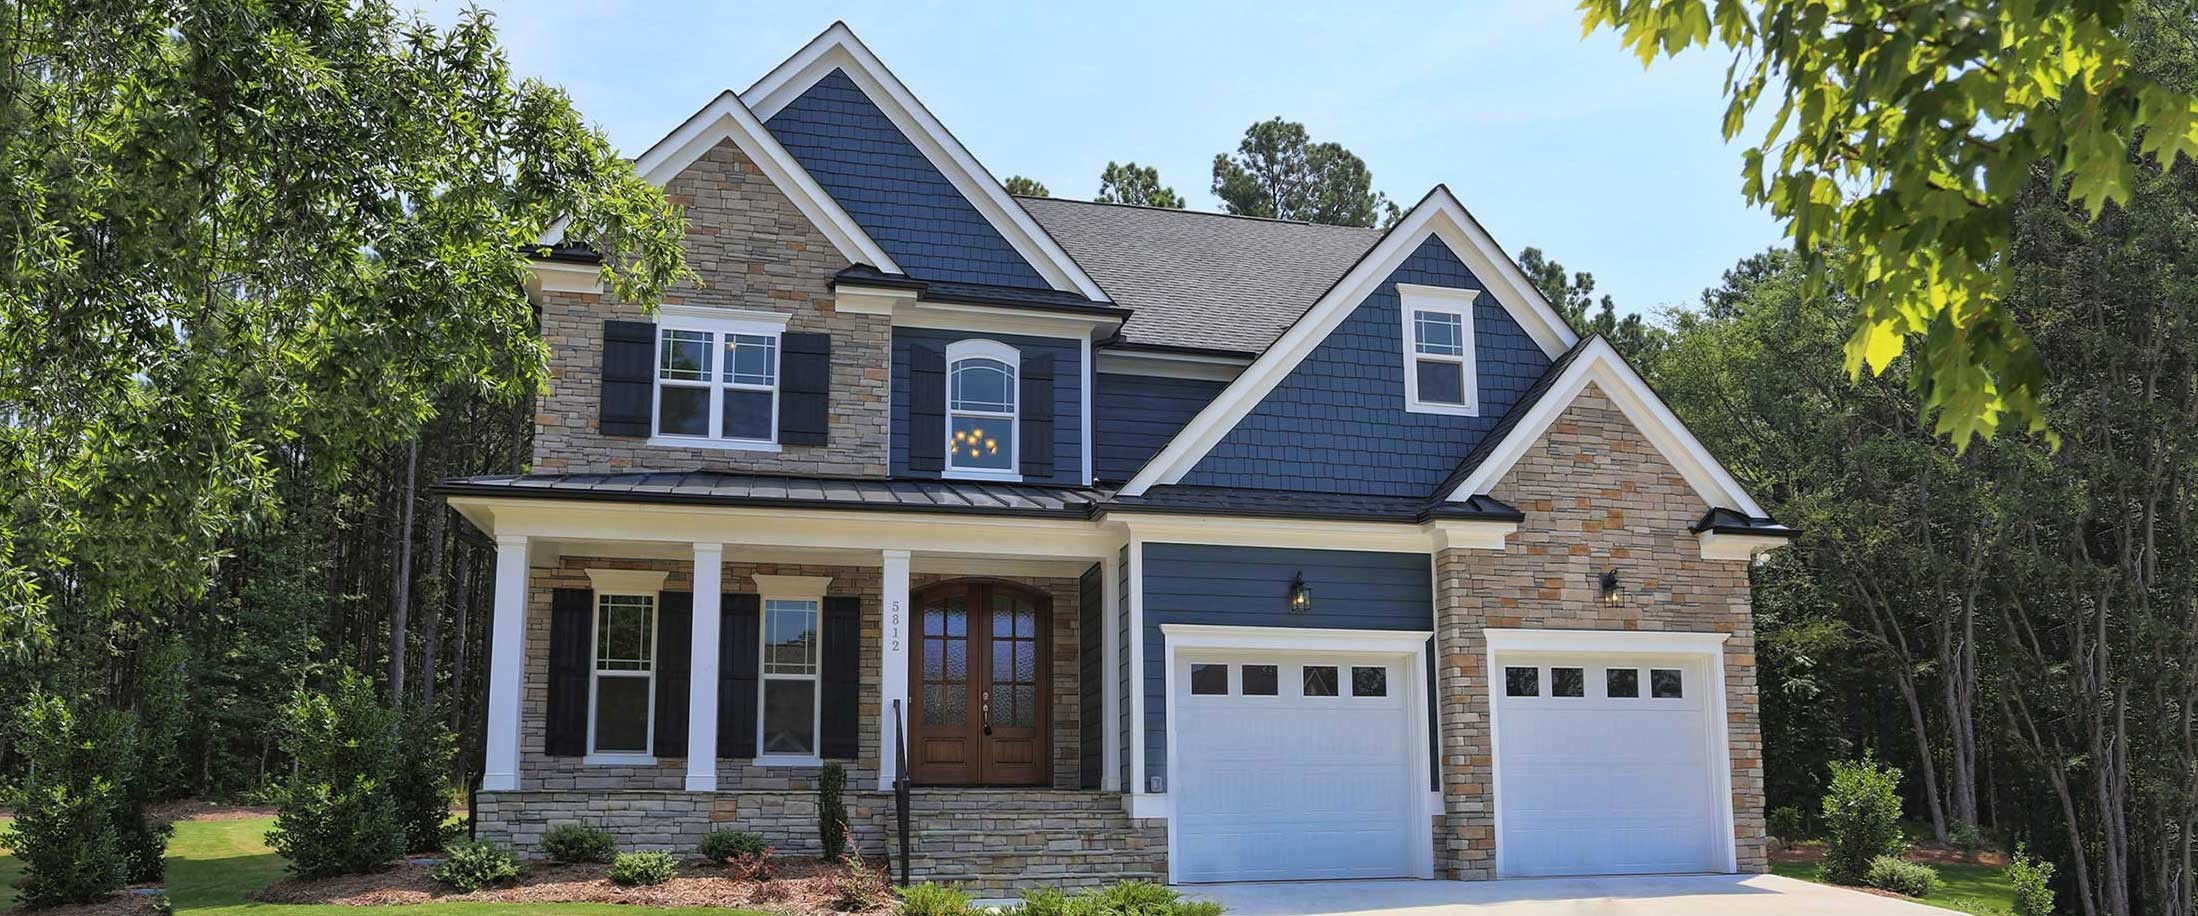 New Housing Community - Olde Mill Trace | New Home Guide on